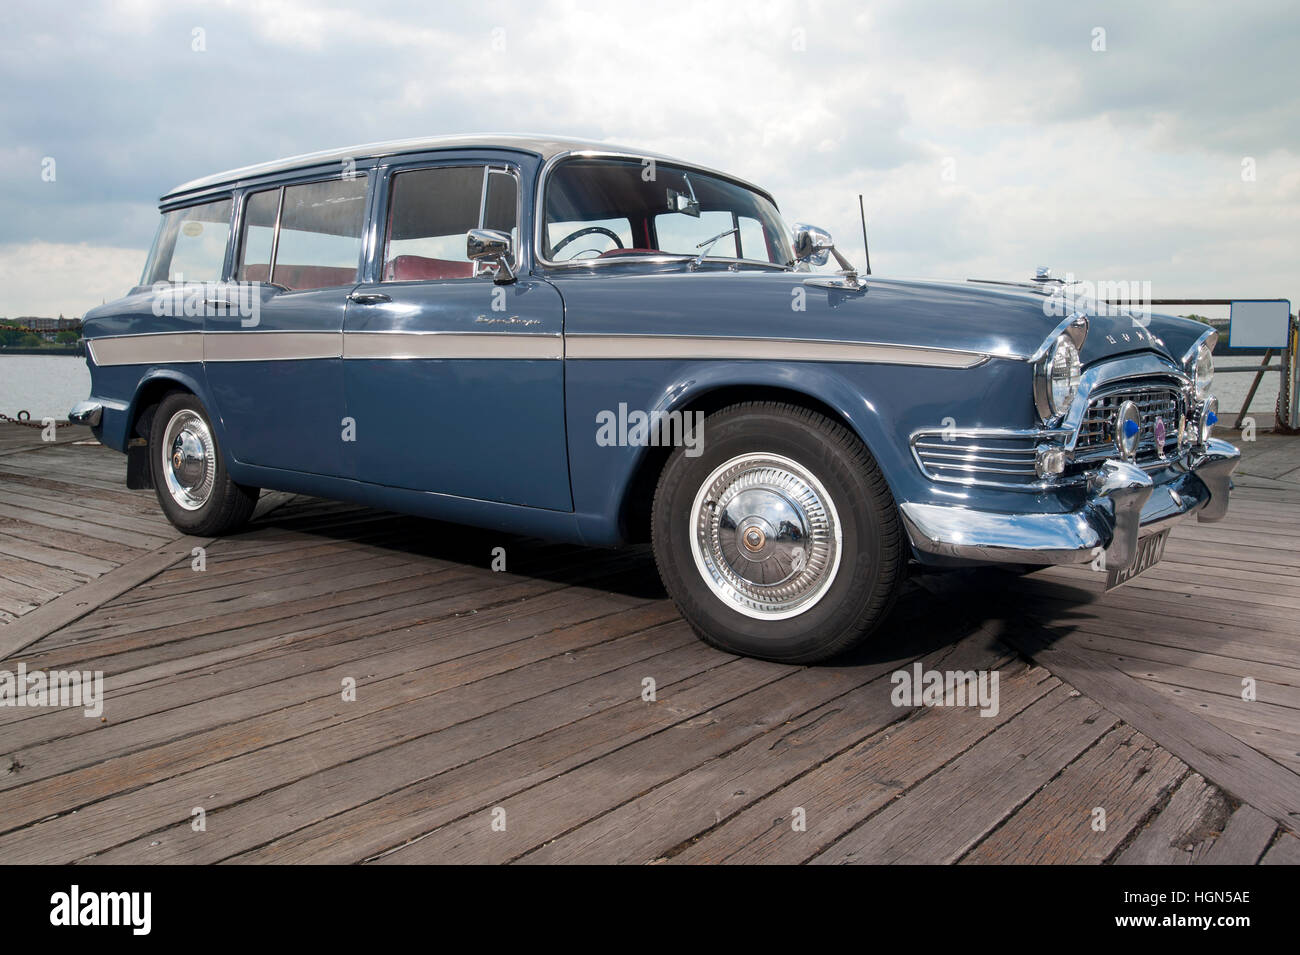 Humber super snipe series v estate classic 1960s british family car from the rootes group